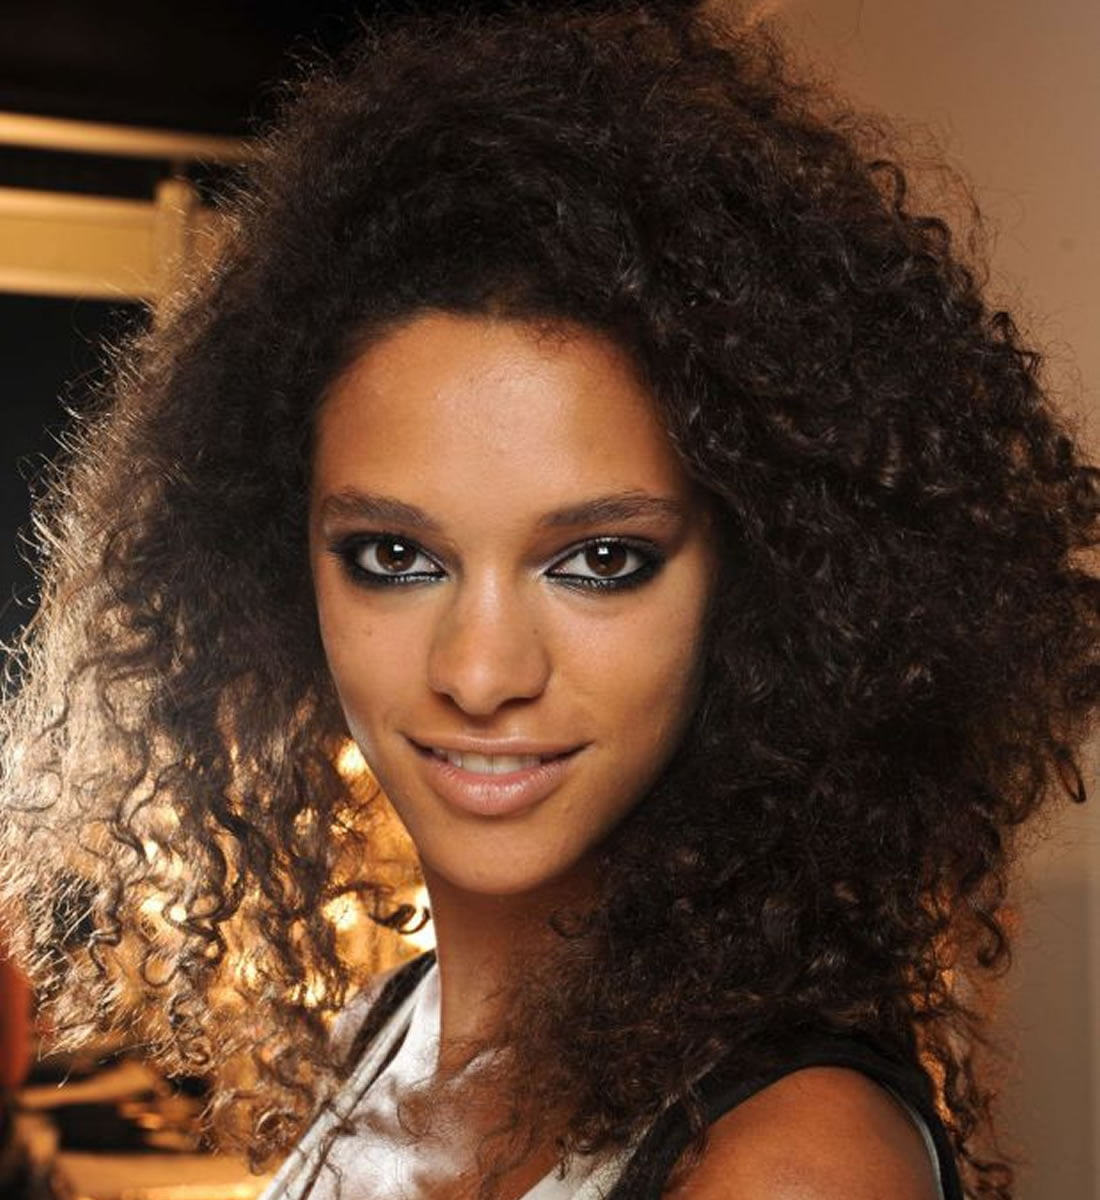 Black Women Medium Lenght Curly Hairstyles 2018-2019 - Hair Colors